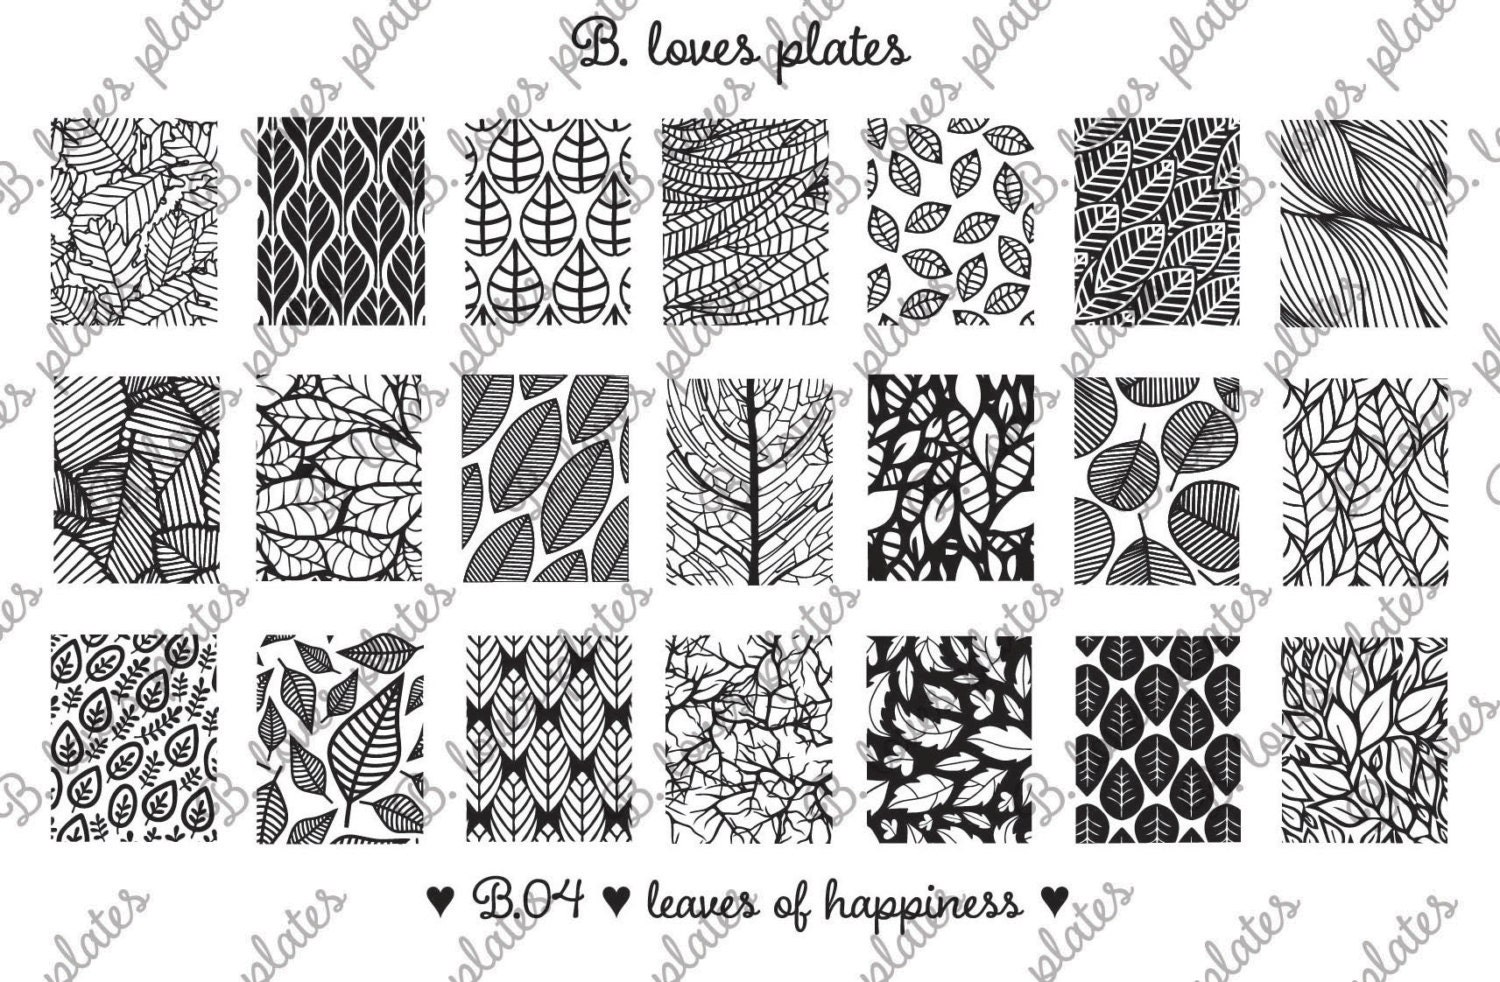 B.04 - leaves of happiness - nail stamping plates (B. Loves Plates ...